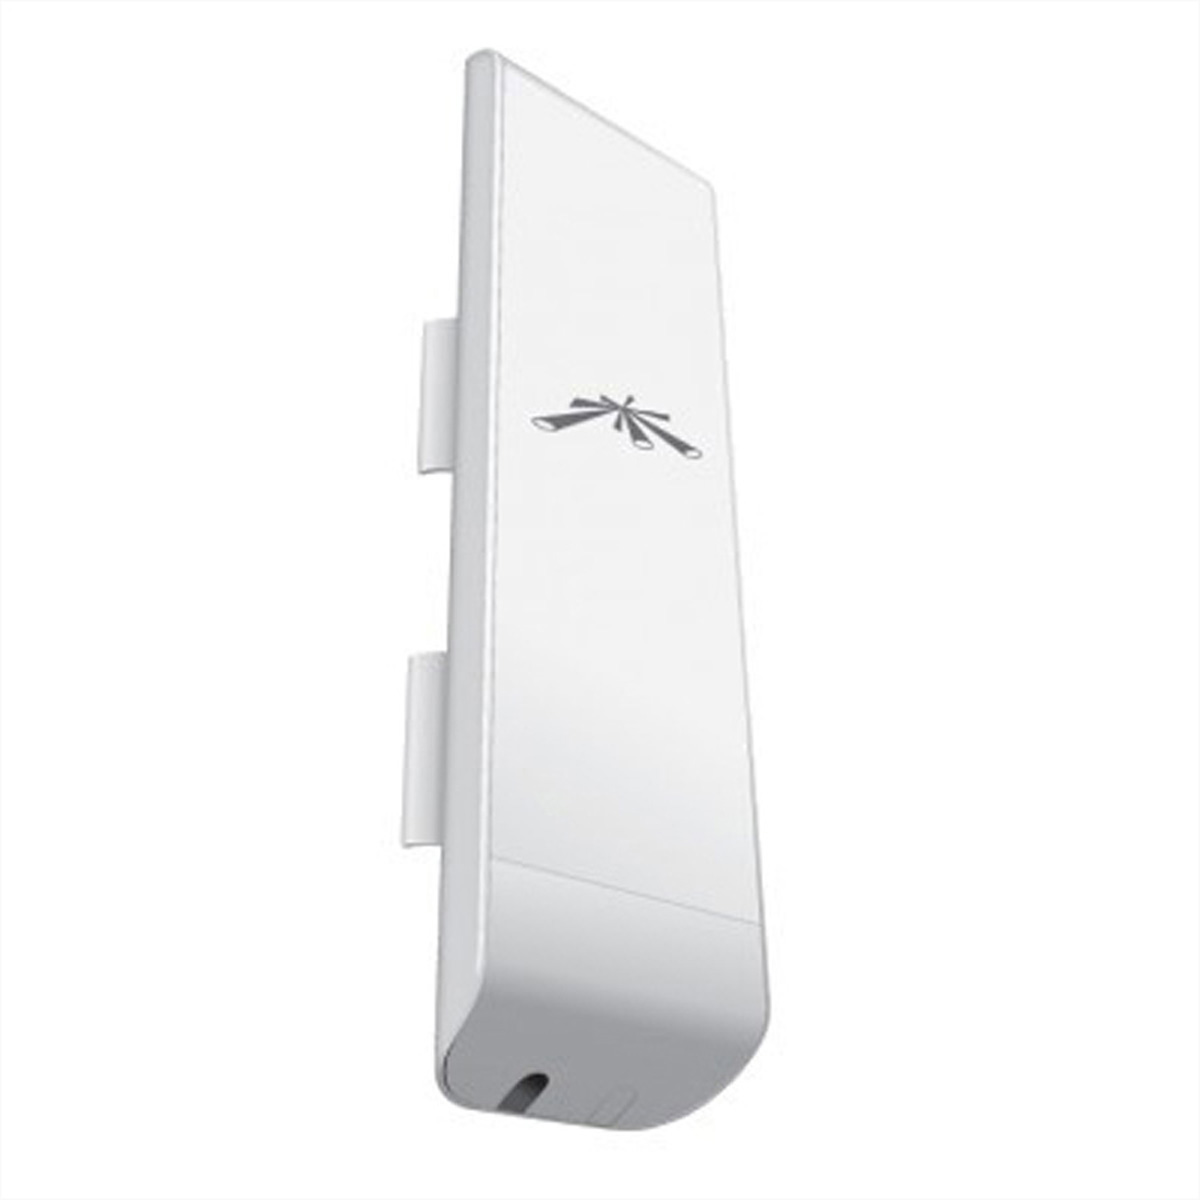 Ubiquiti NSM5 NanoStation Airmax 5GHz Indoor/Outdoor CPE, 150+Mbp/s, 15+km